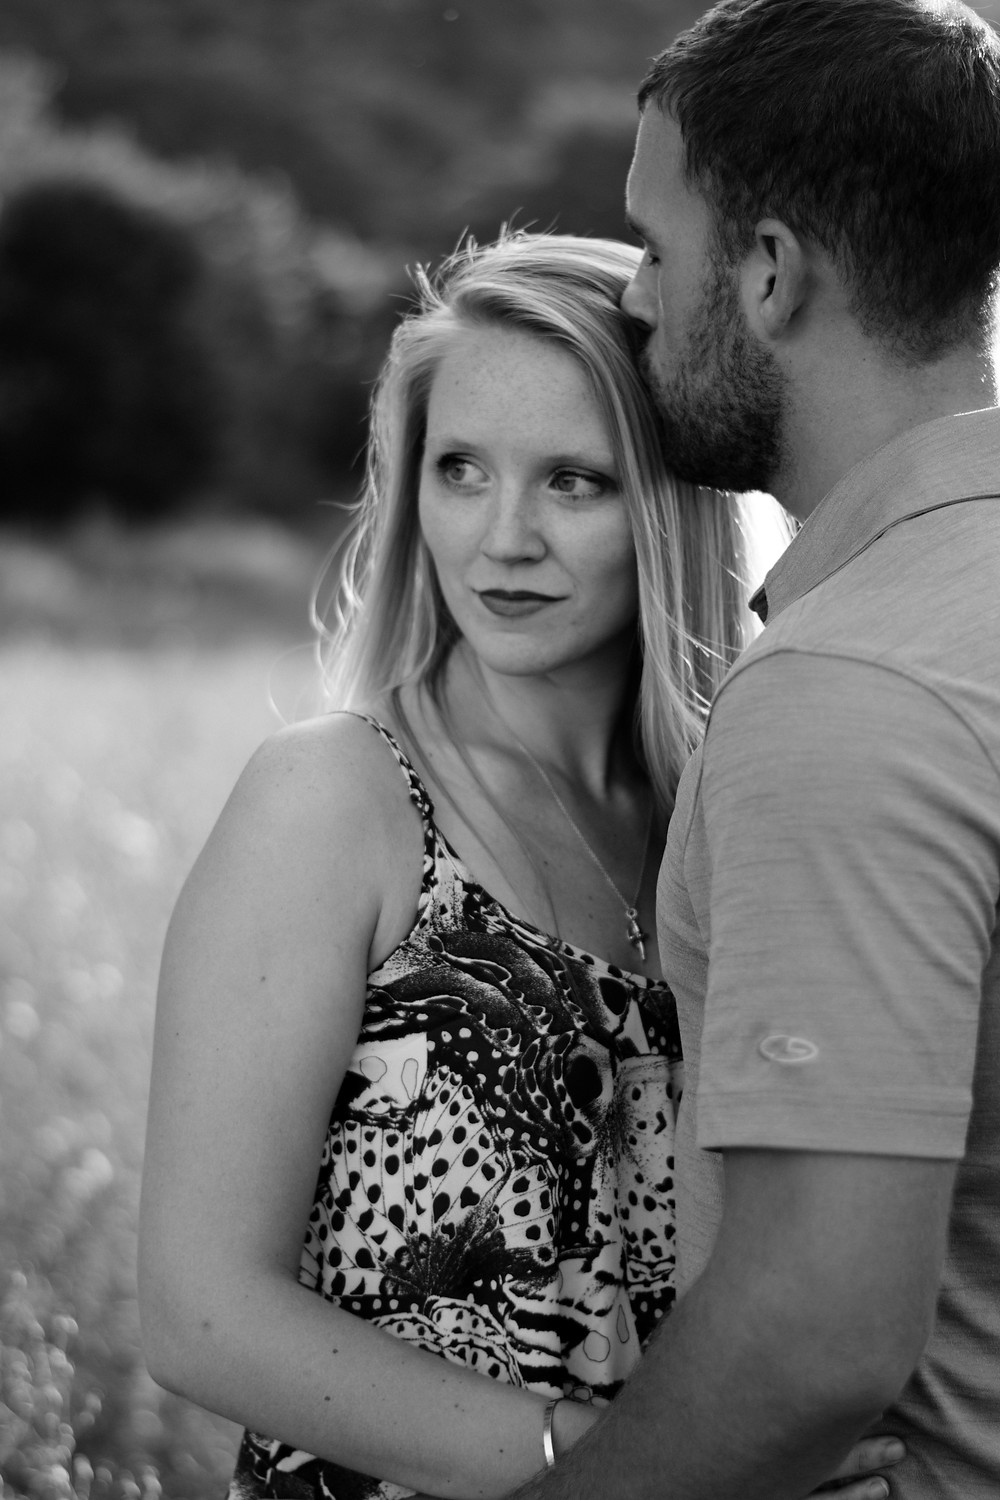 black and white, Engagement session, rustic, fun, wedding photographer